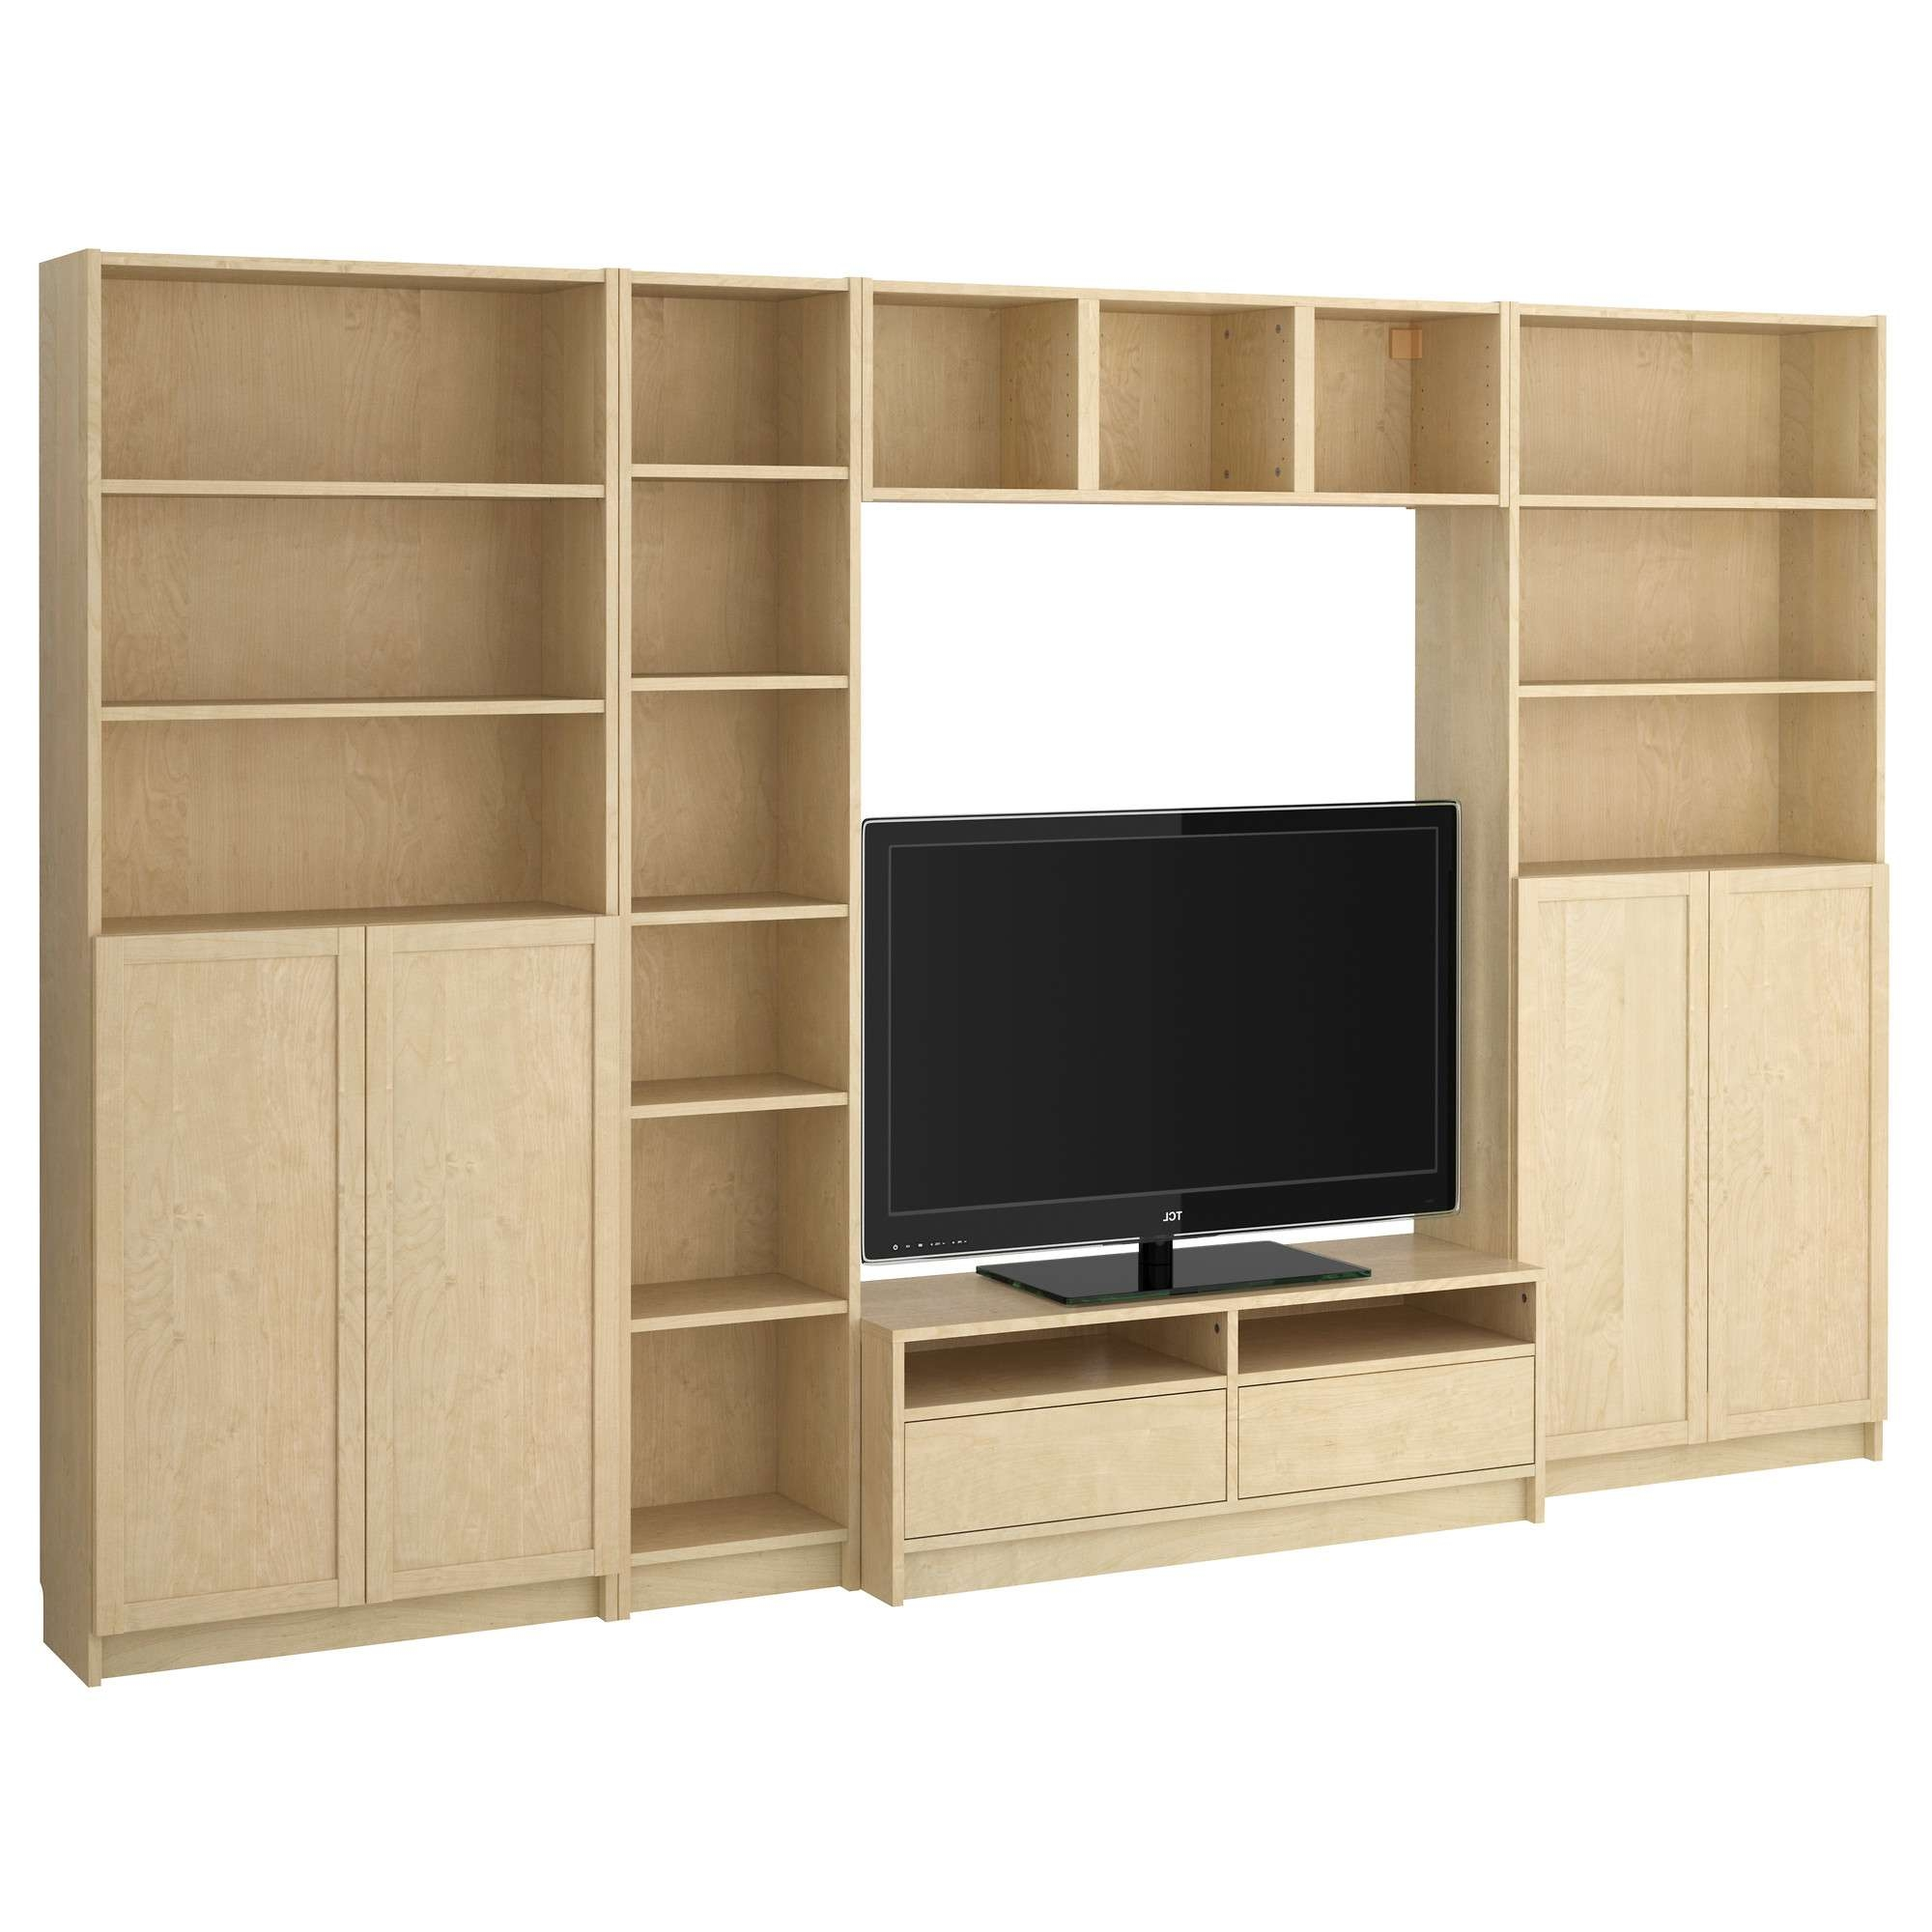 Shelves : Fabulous Entertainment Centers Ikea Tv Stands Costco With Regard To Tv Cabinets With Storage (View 12 of 20)